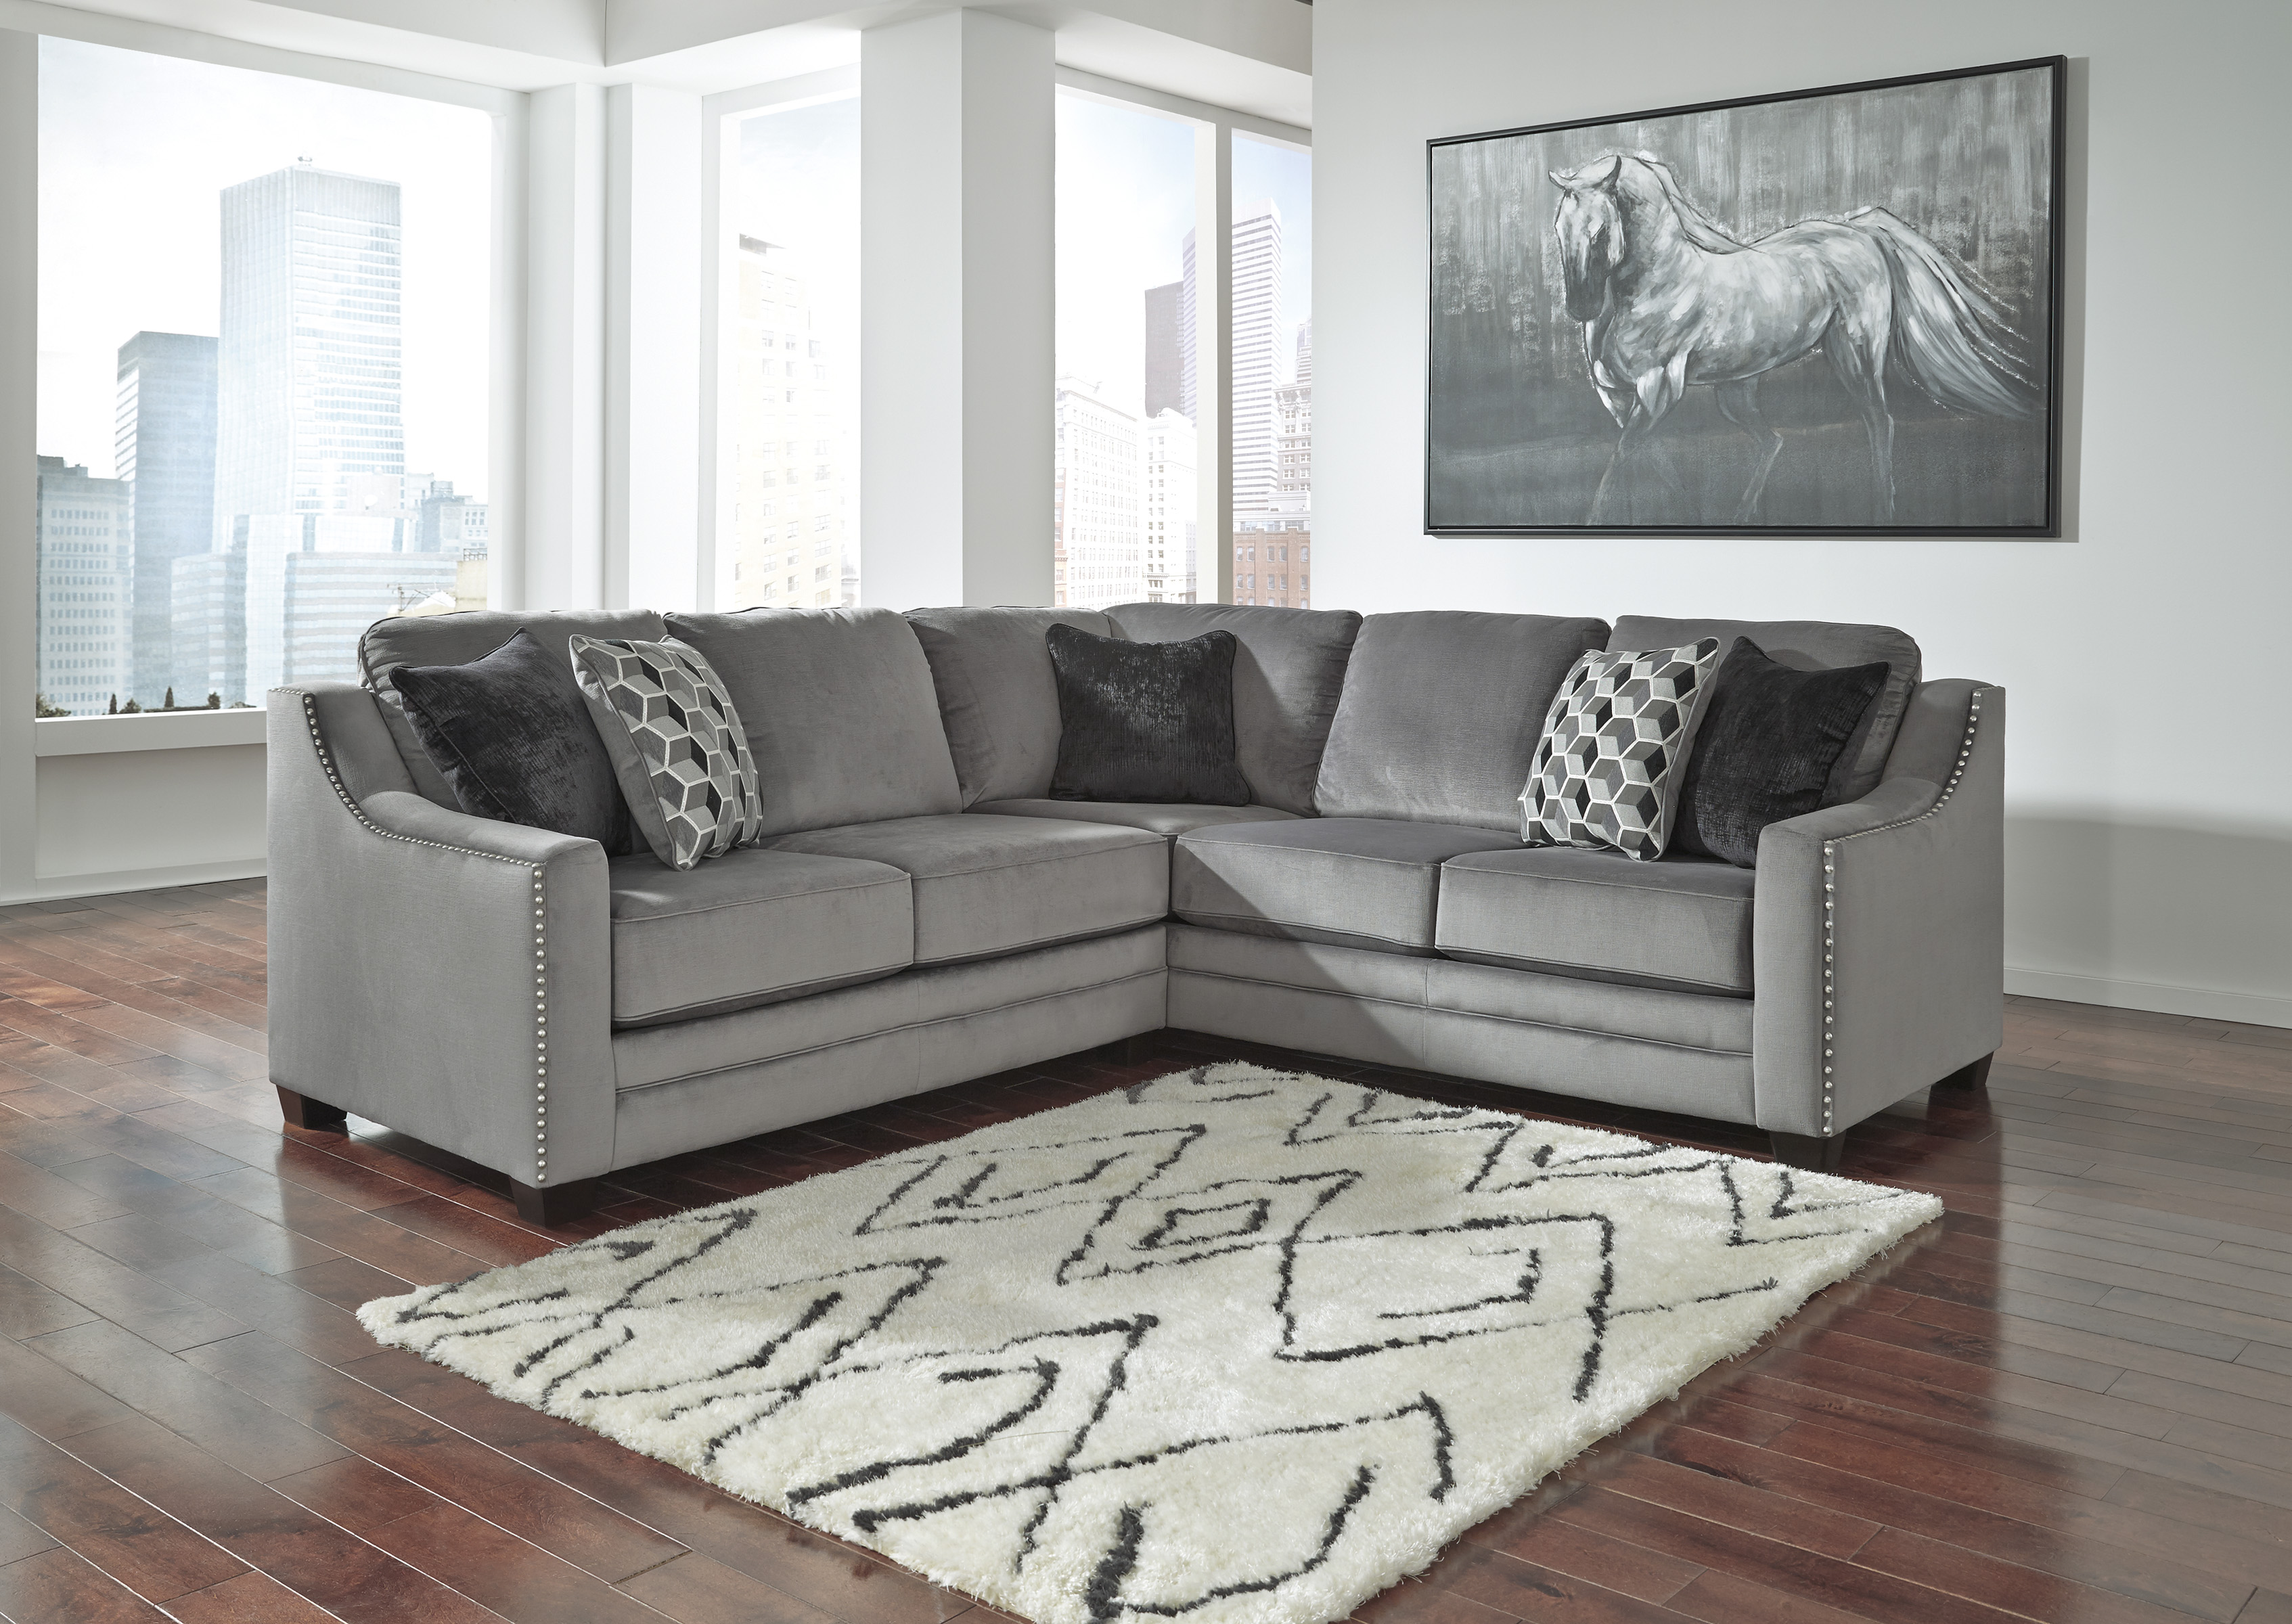 Bicknell Charcoal 2PC Sectional Sofa with Left Arm Facing